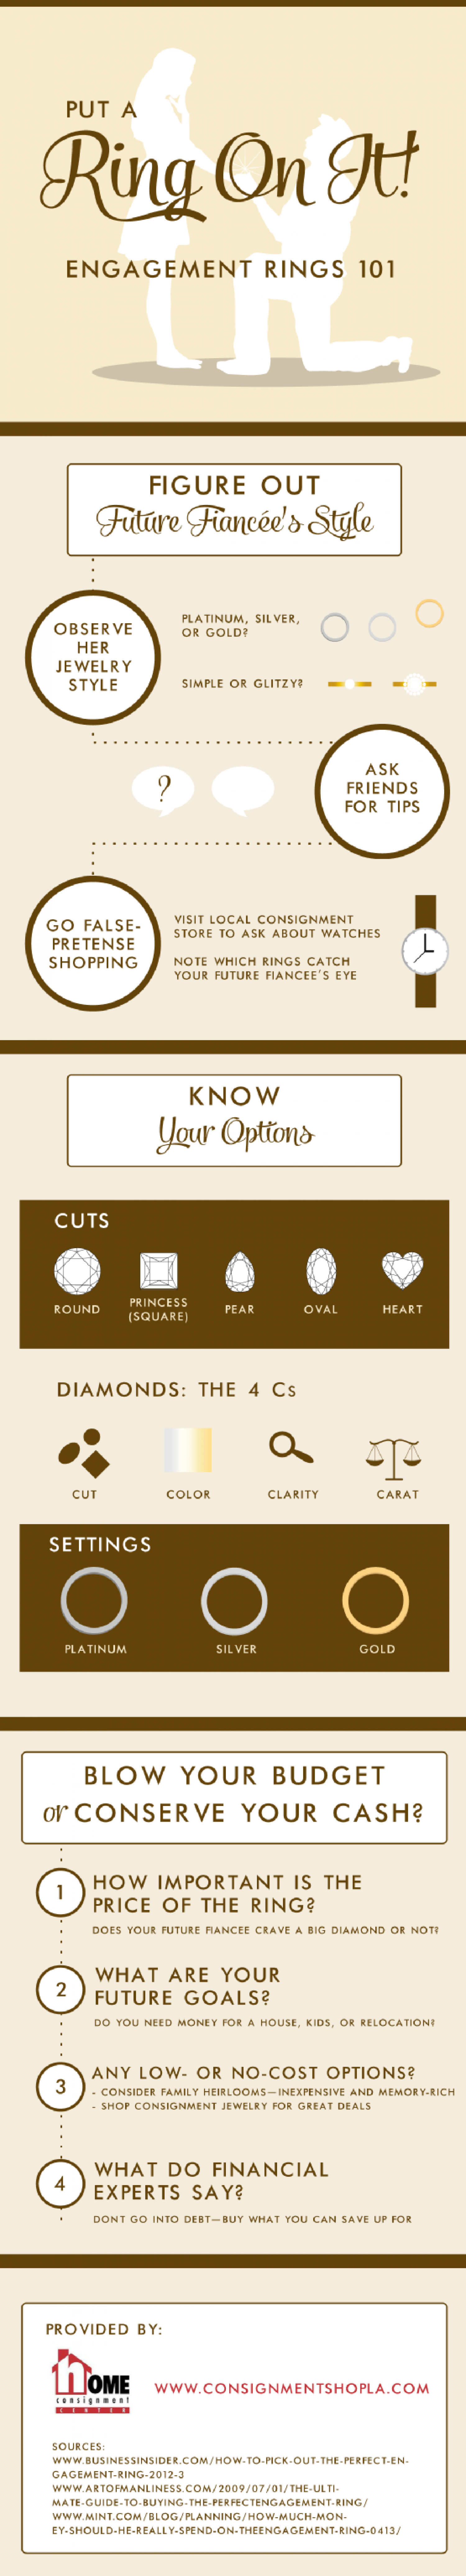 Put a Ring On It! Engagement Rings 101 Infographic